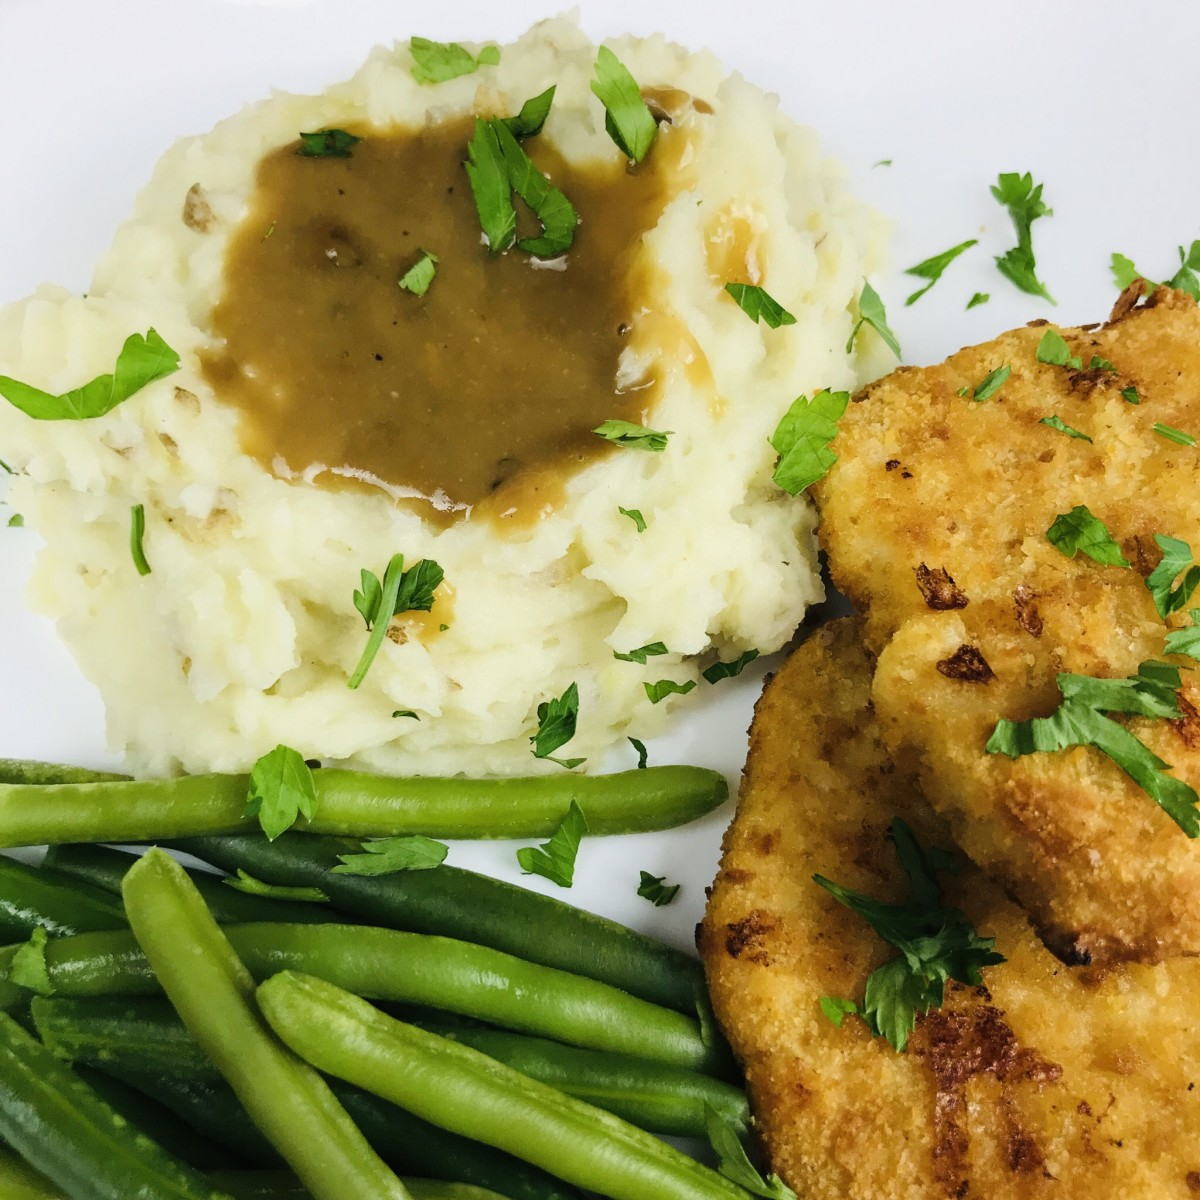 Creamy whipped potatoes with steamed green beans and Gardein Turk'y Cutlets.